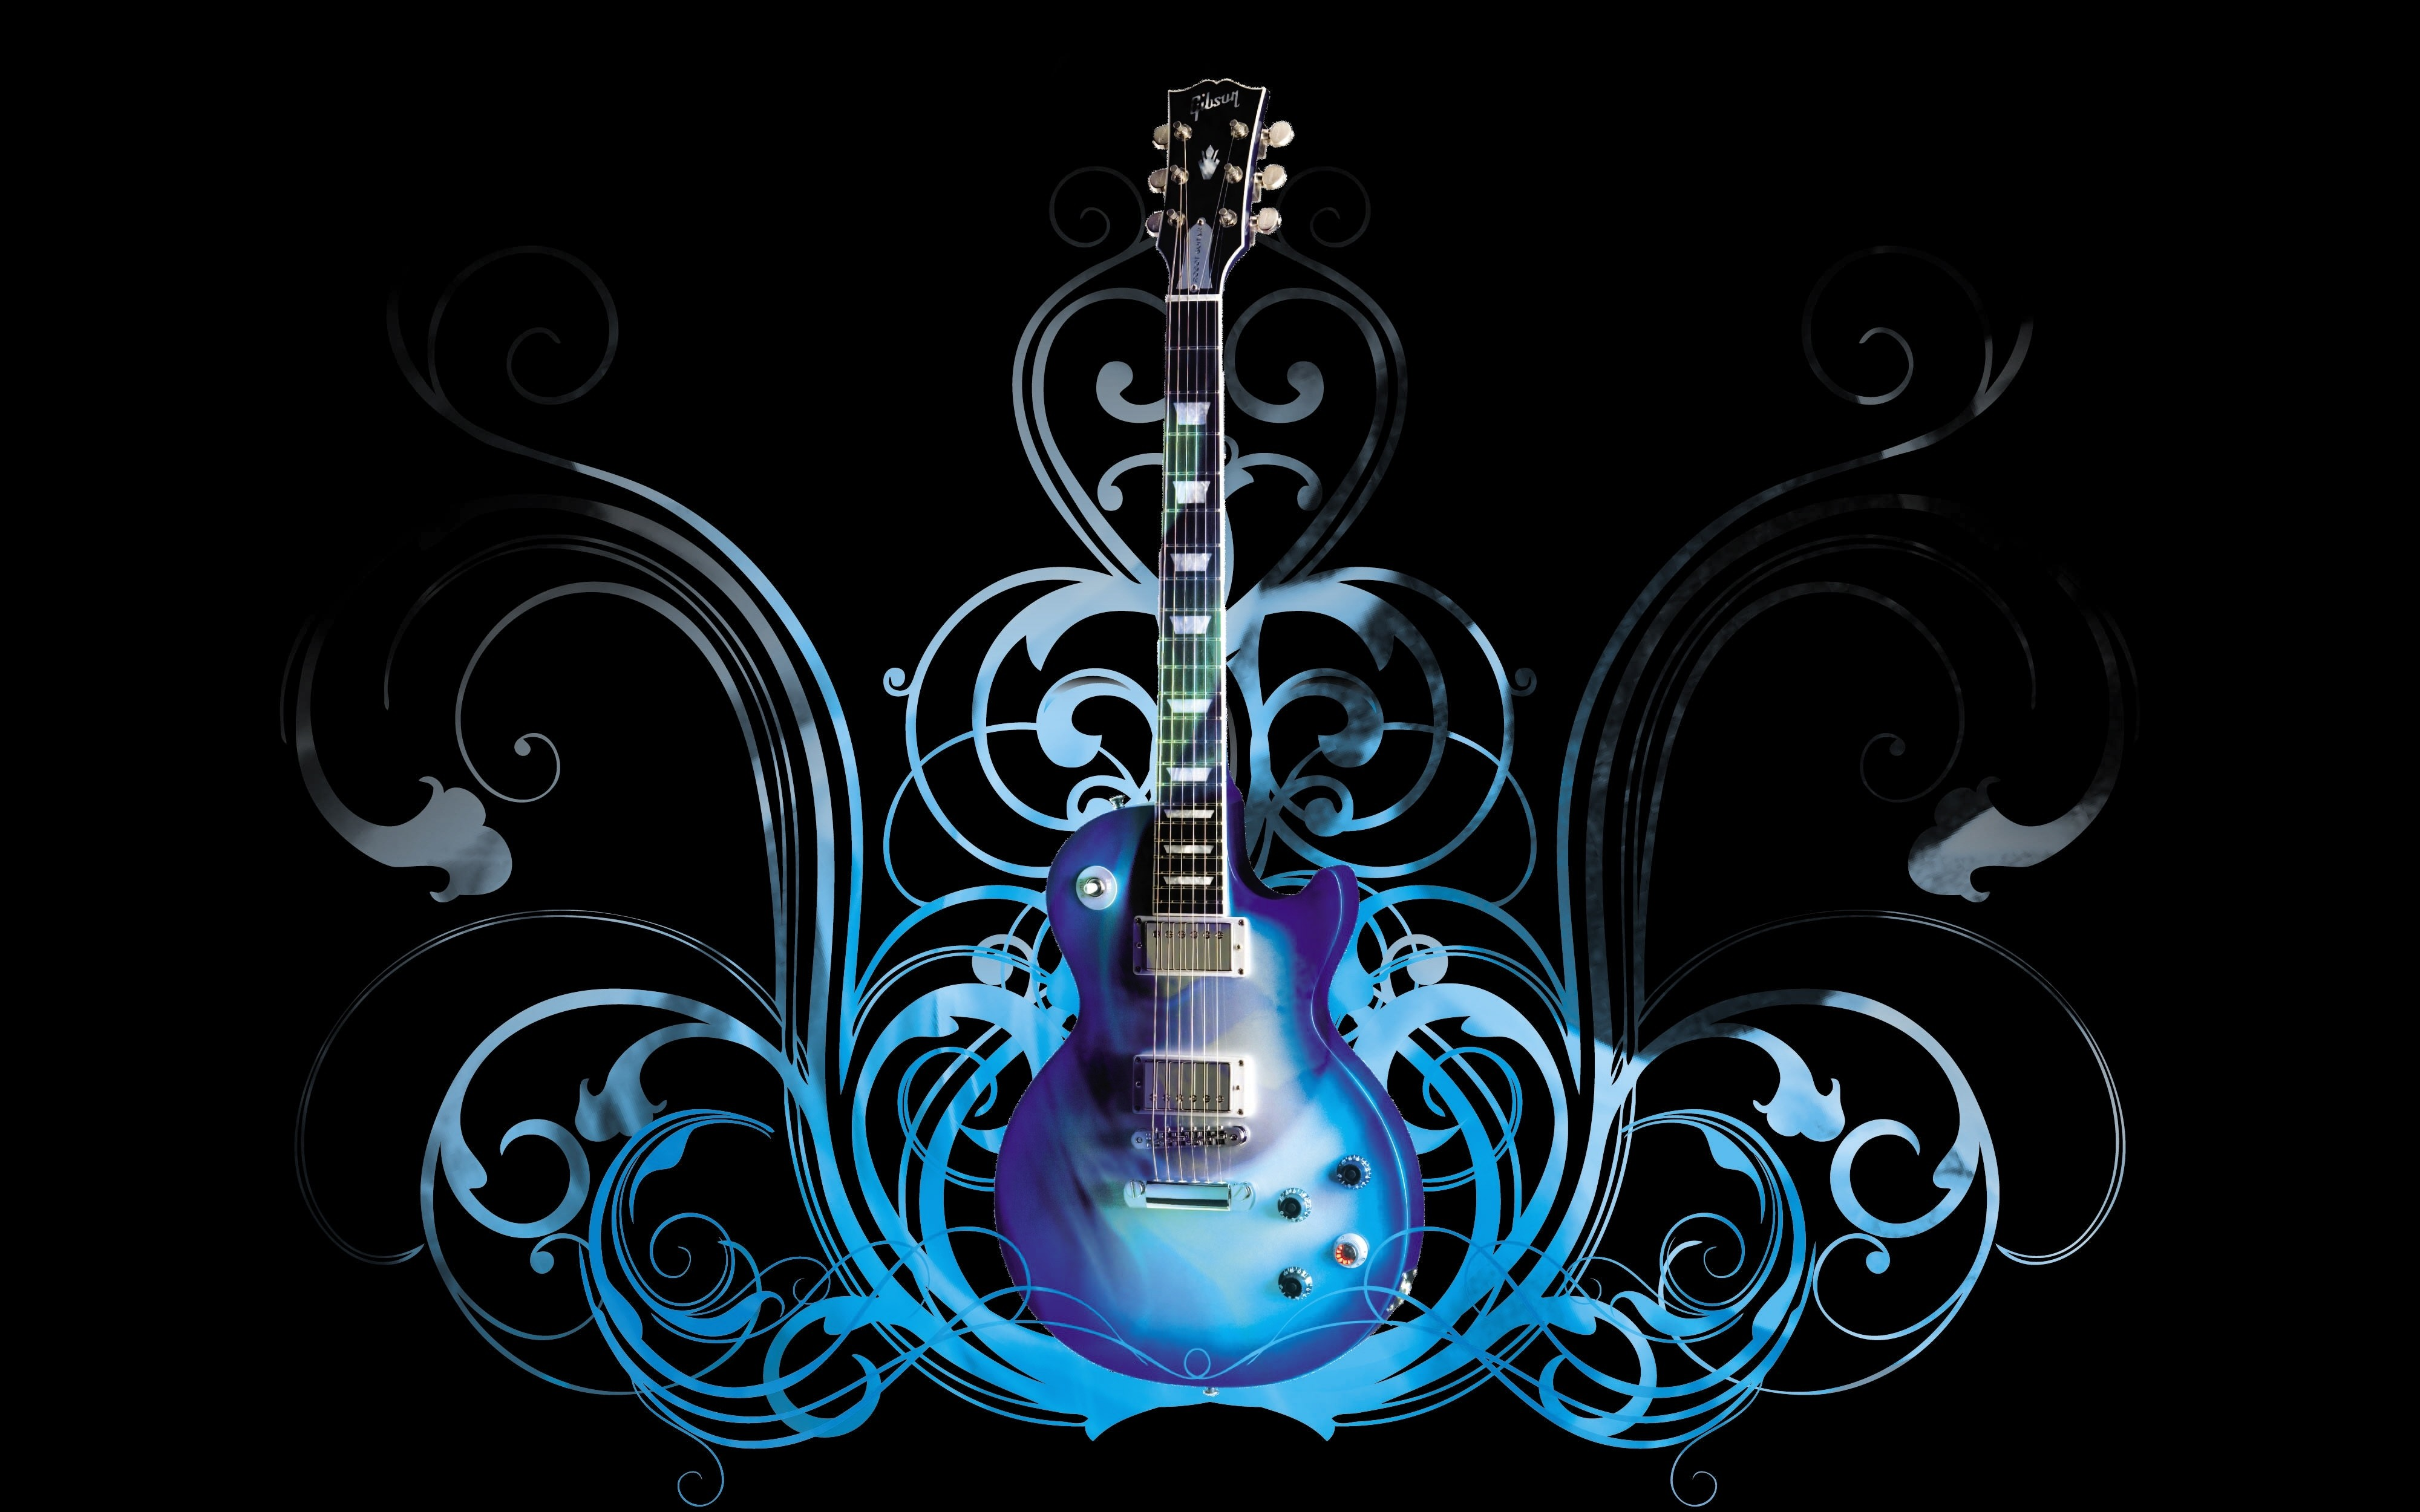 Free download guitar wallpapers high quality download 4000x2500 for your desktop mobile - Free guitar wallpapers for pc ...